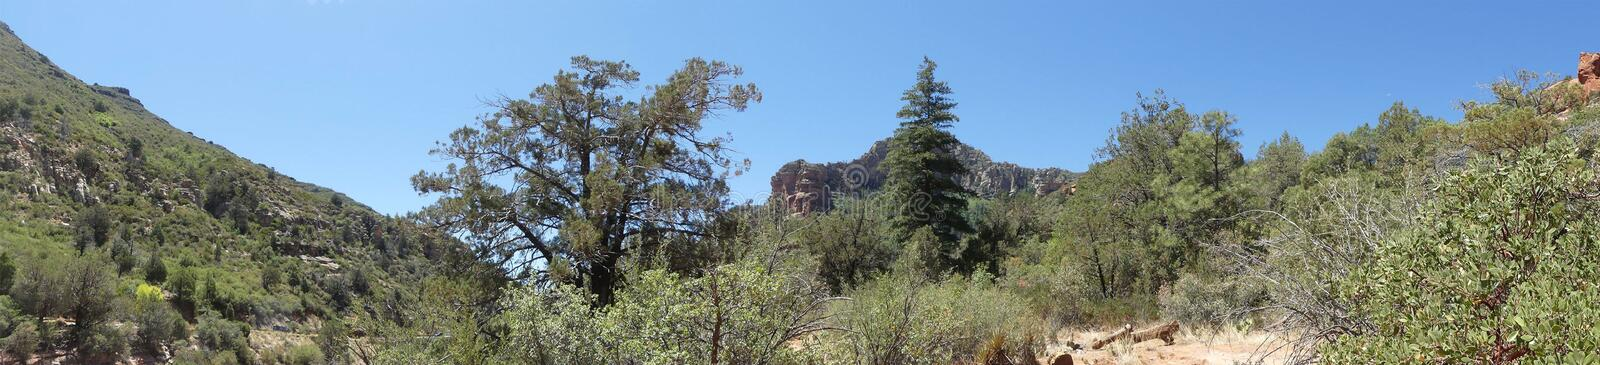 Arizona, Slide Rock Park, A view of Oak Creek Canyon from Slide Rock stock images